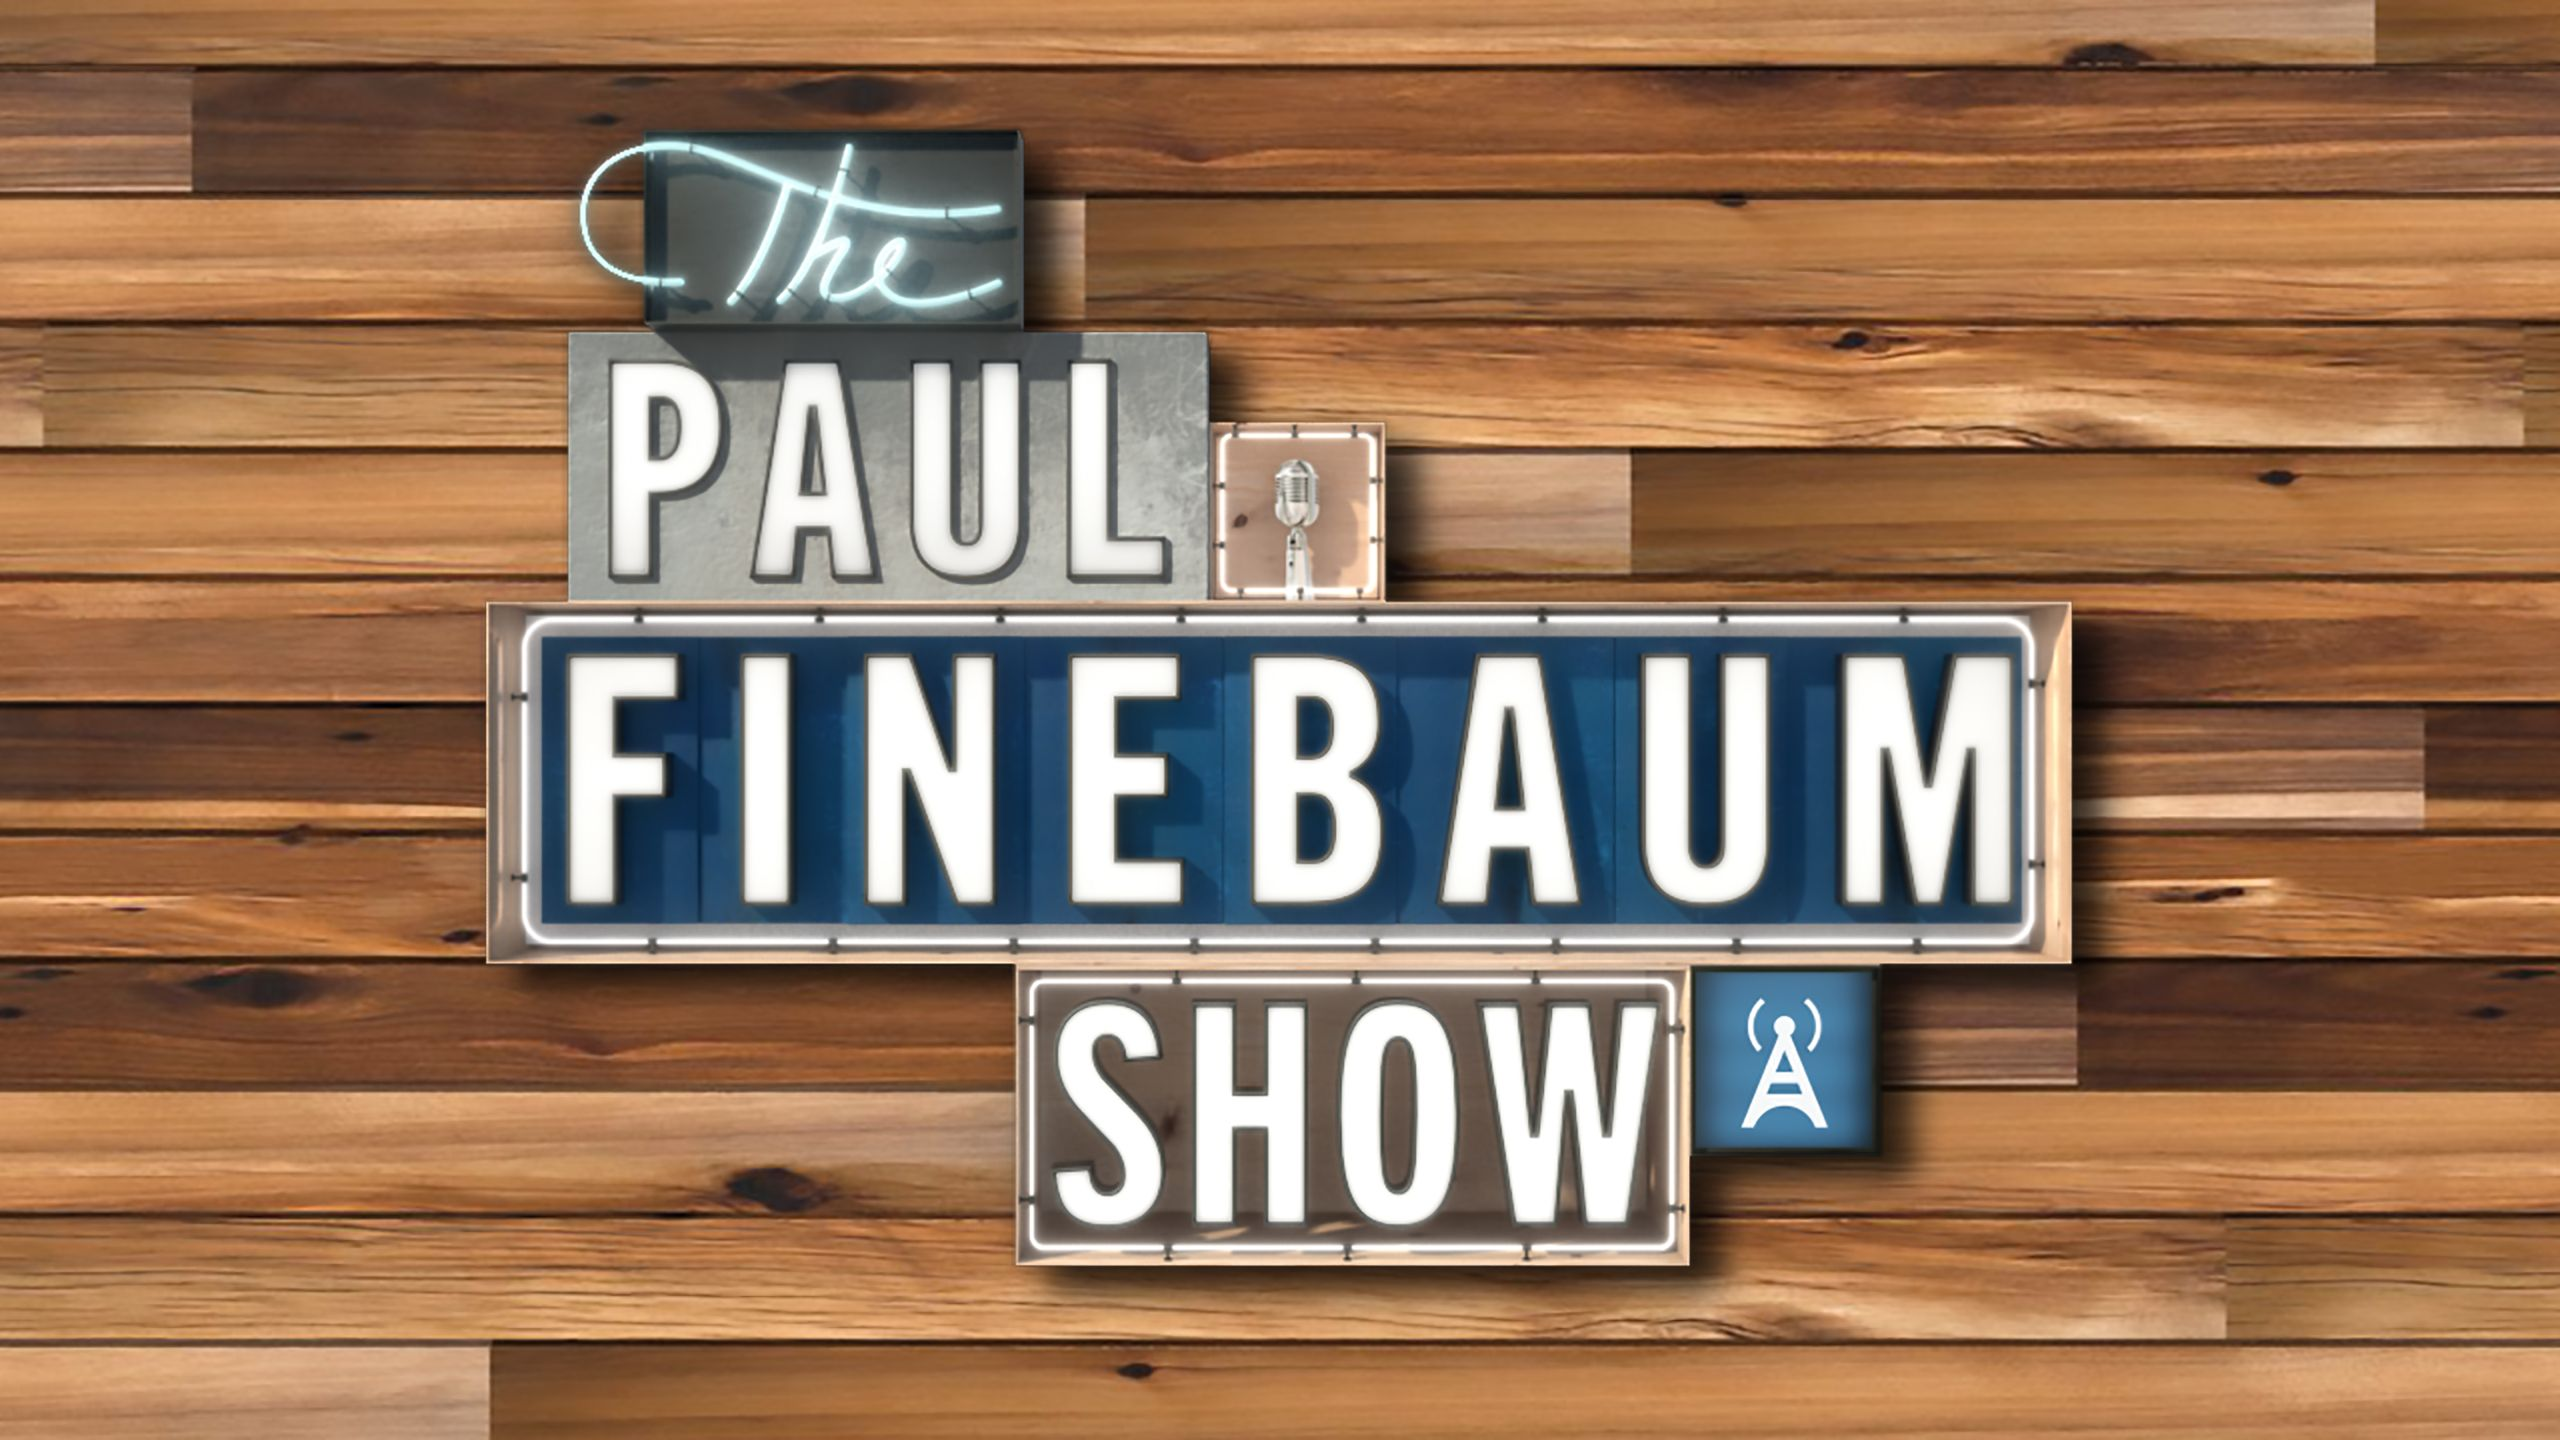 Thu, 11/16 - The Paul Finebaum Show